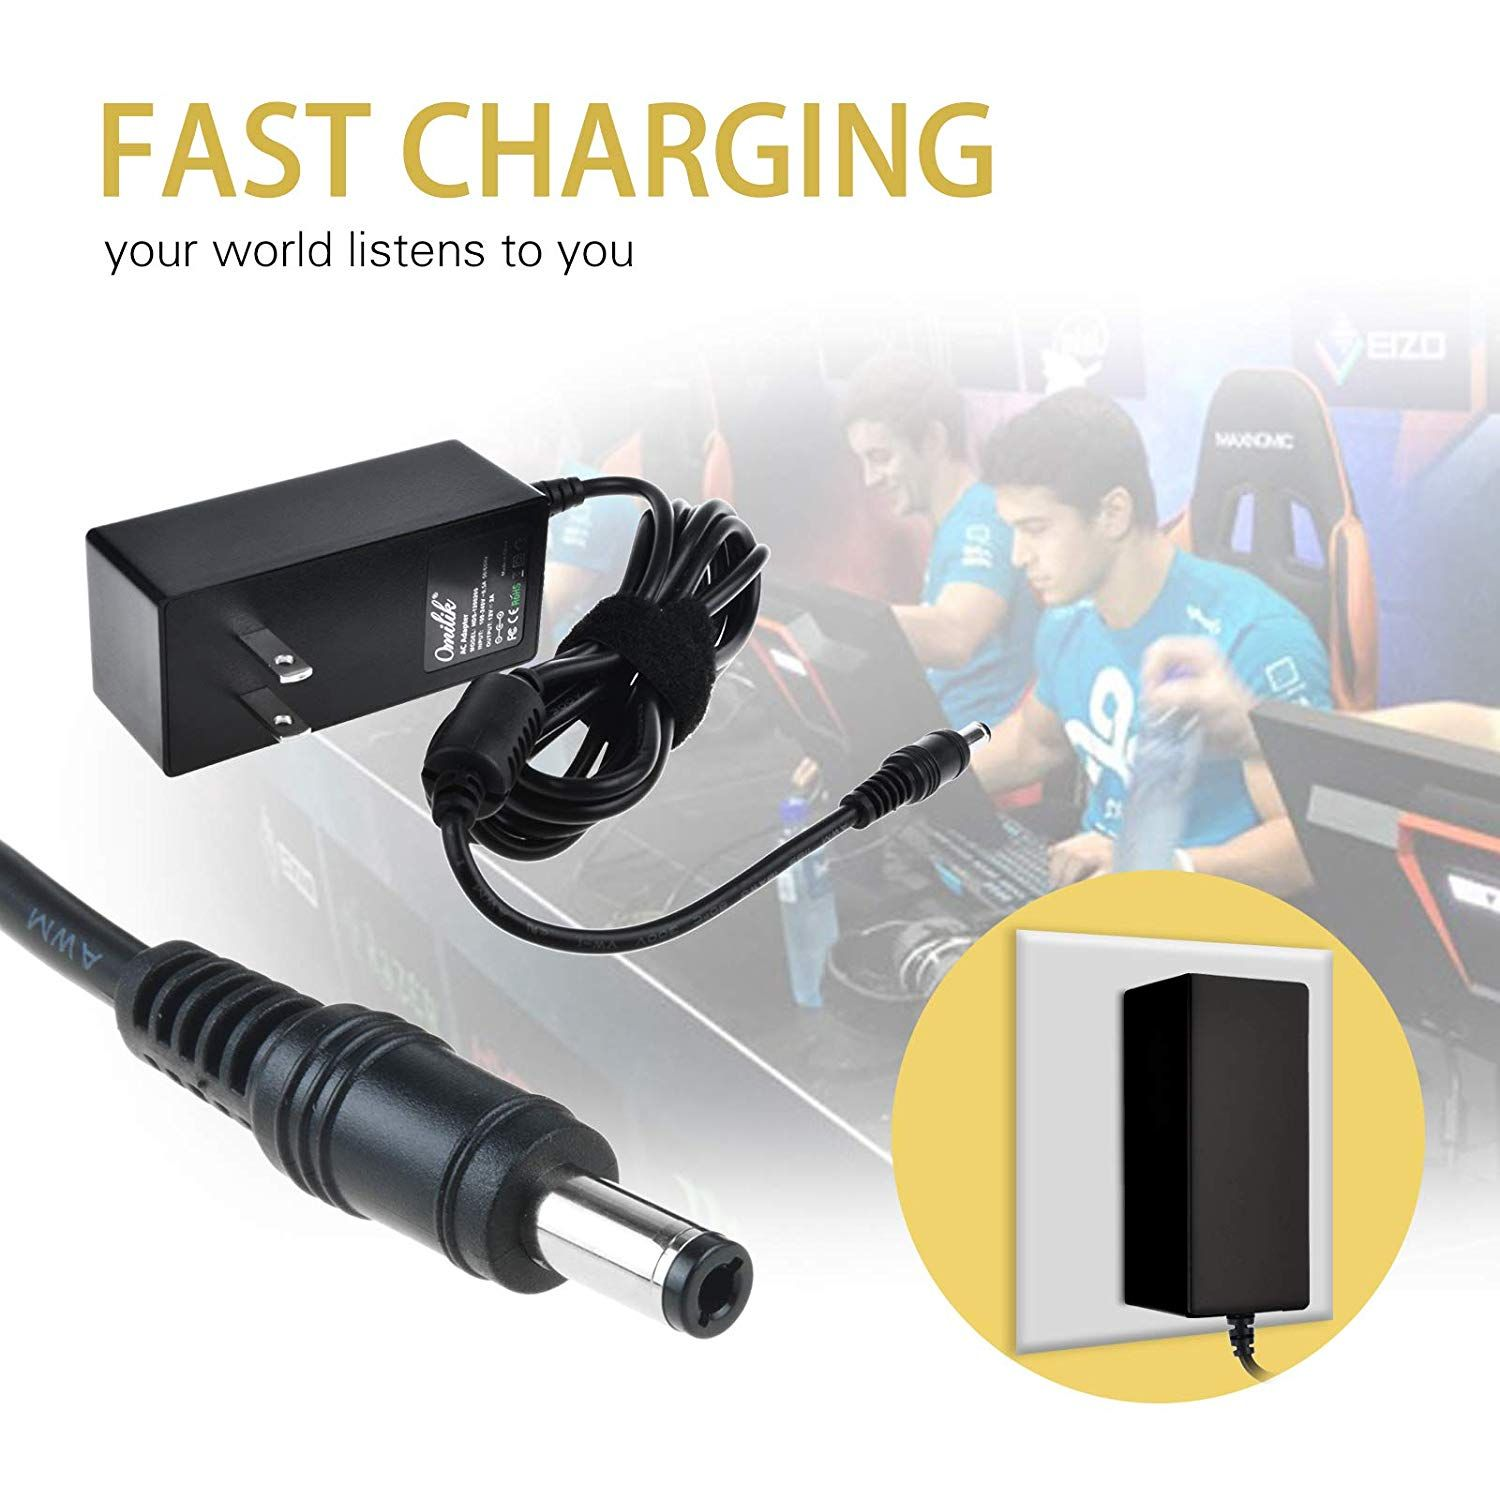 Gaming Chair Charger Charger, Games, Gaming chair